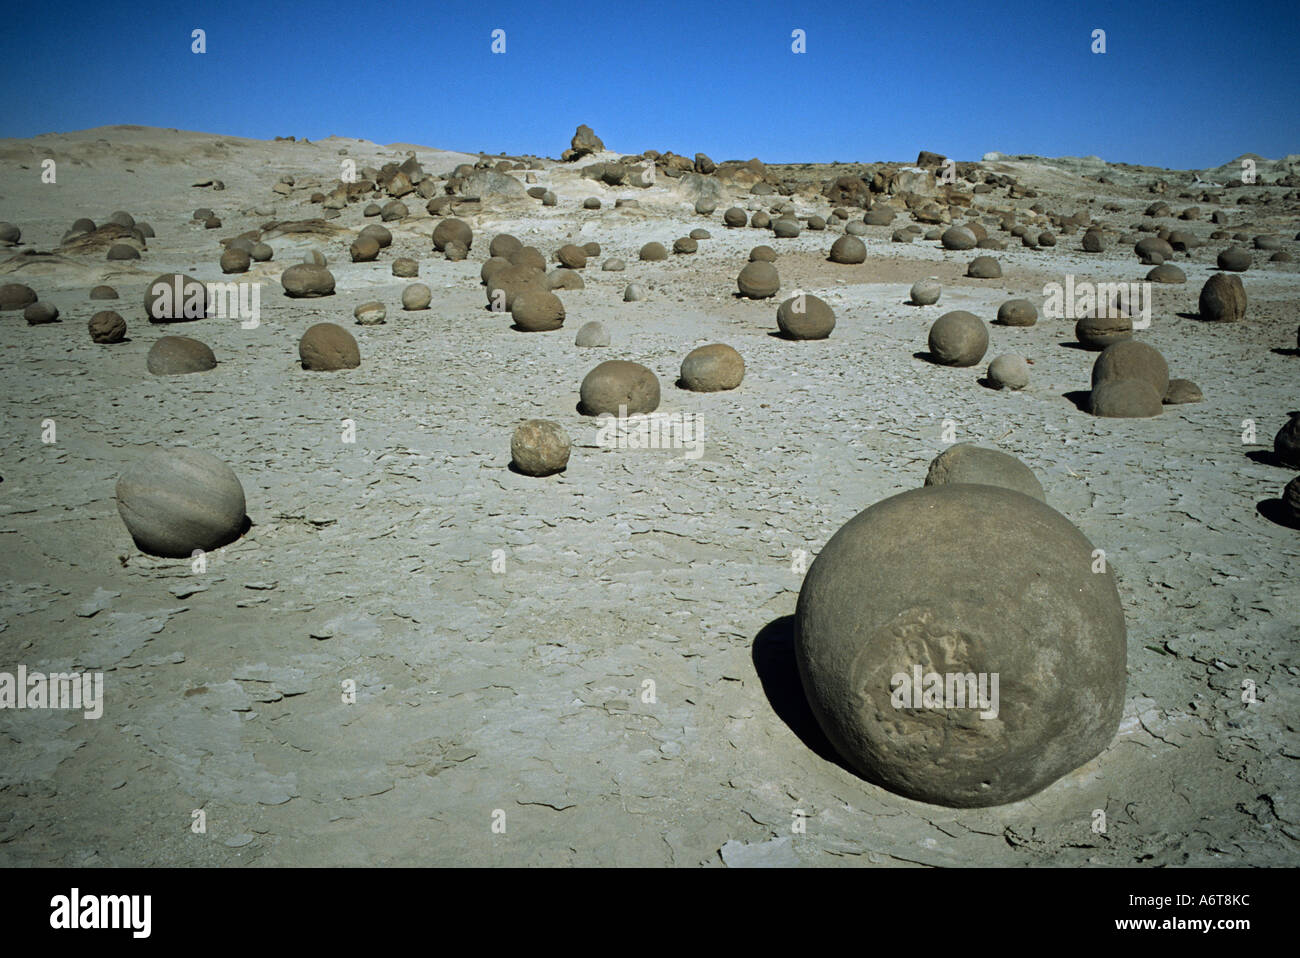 round stone balls formed from the dry desert a strange phenomenon in North Argentina - Stock Image